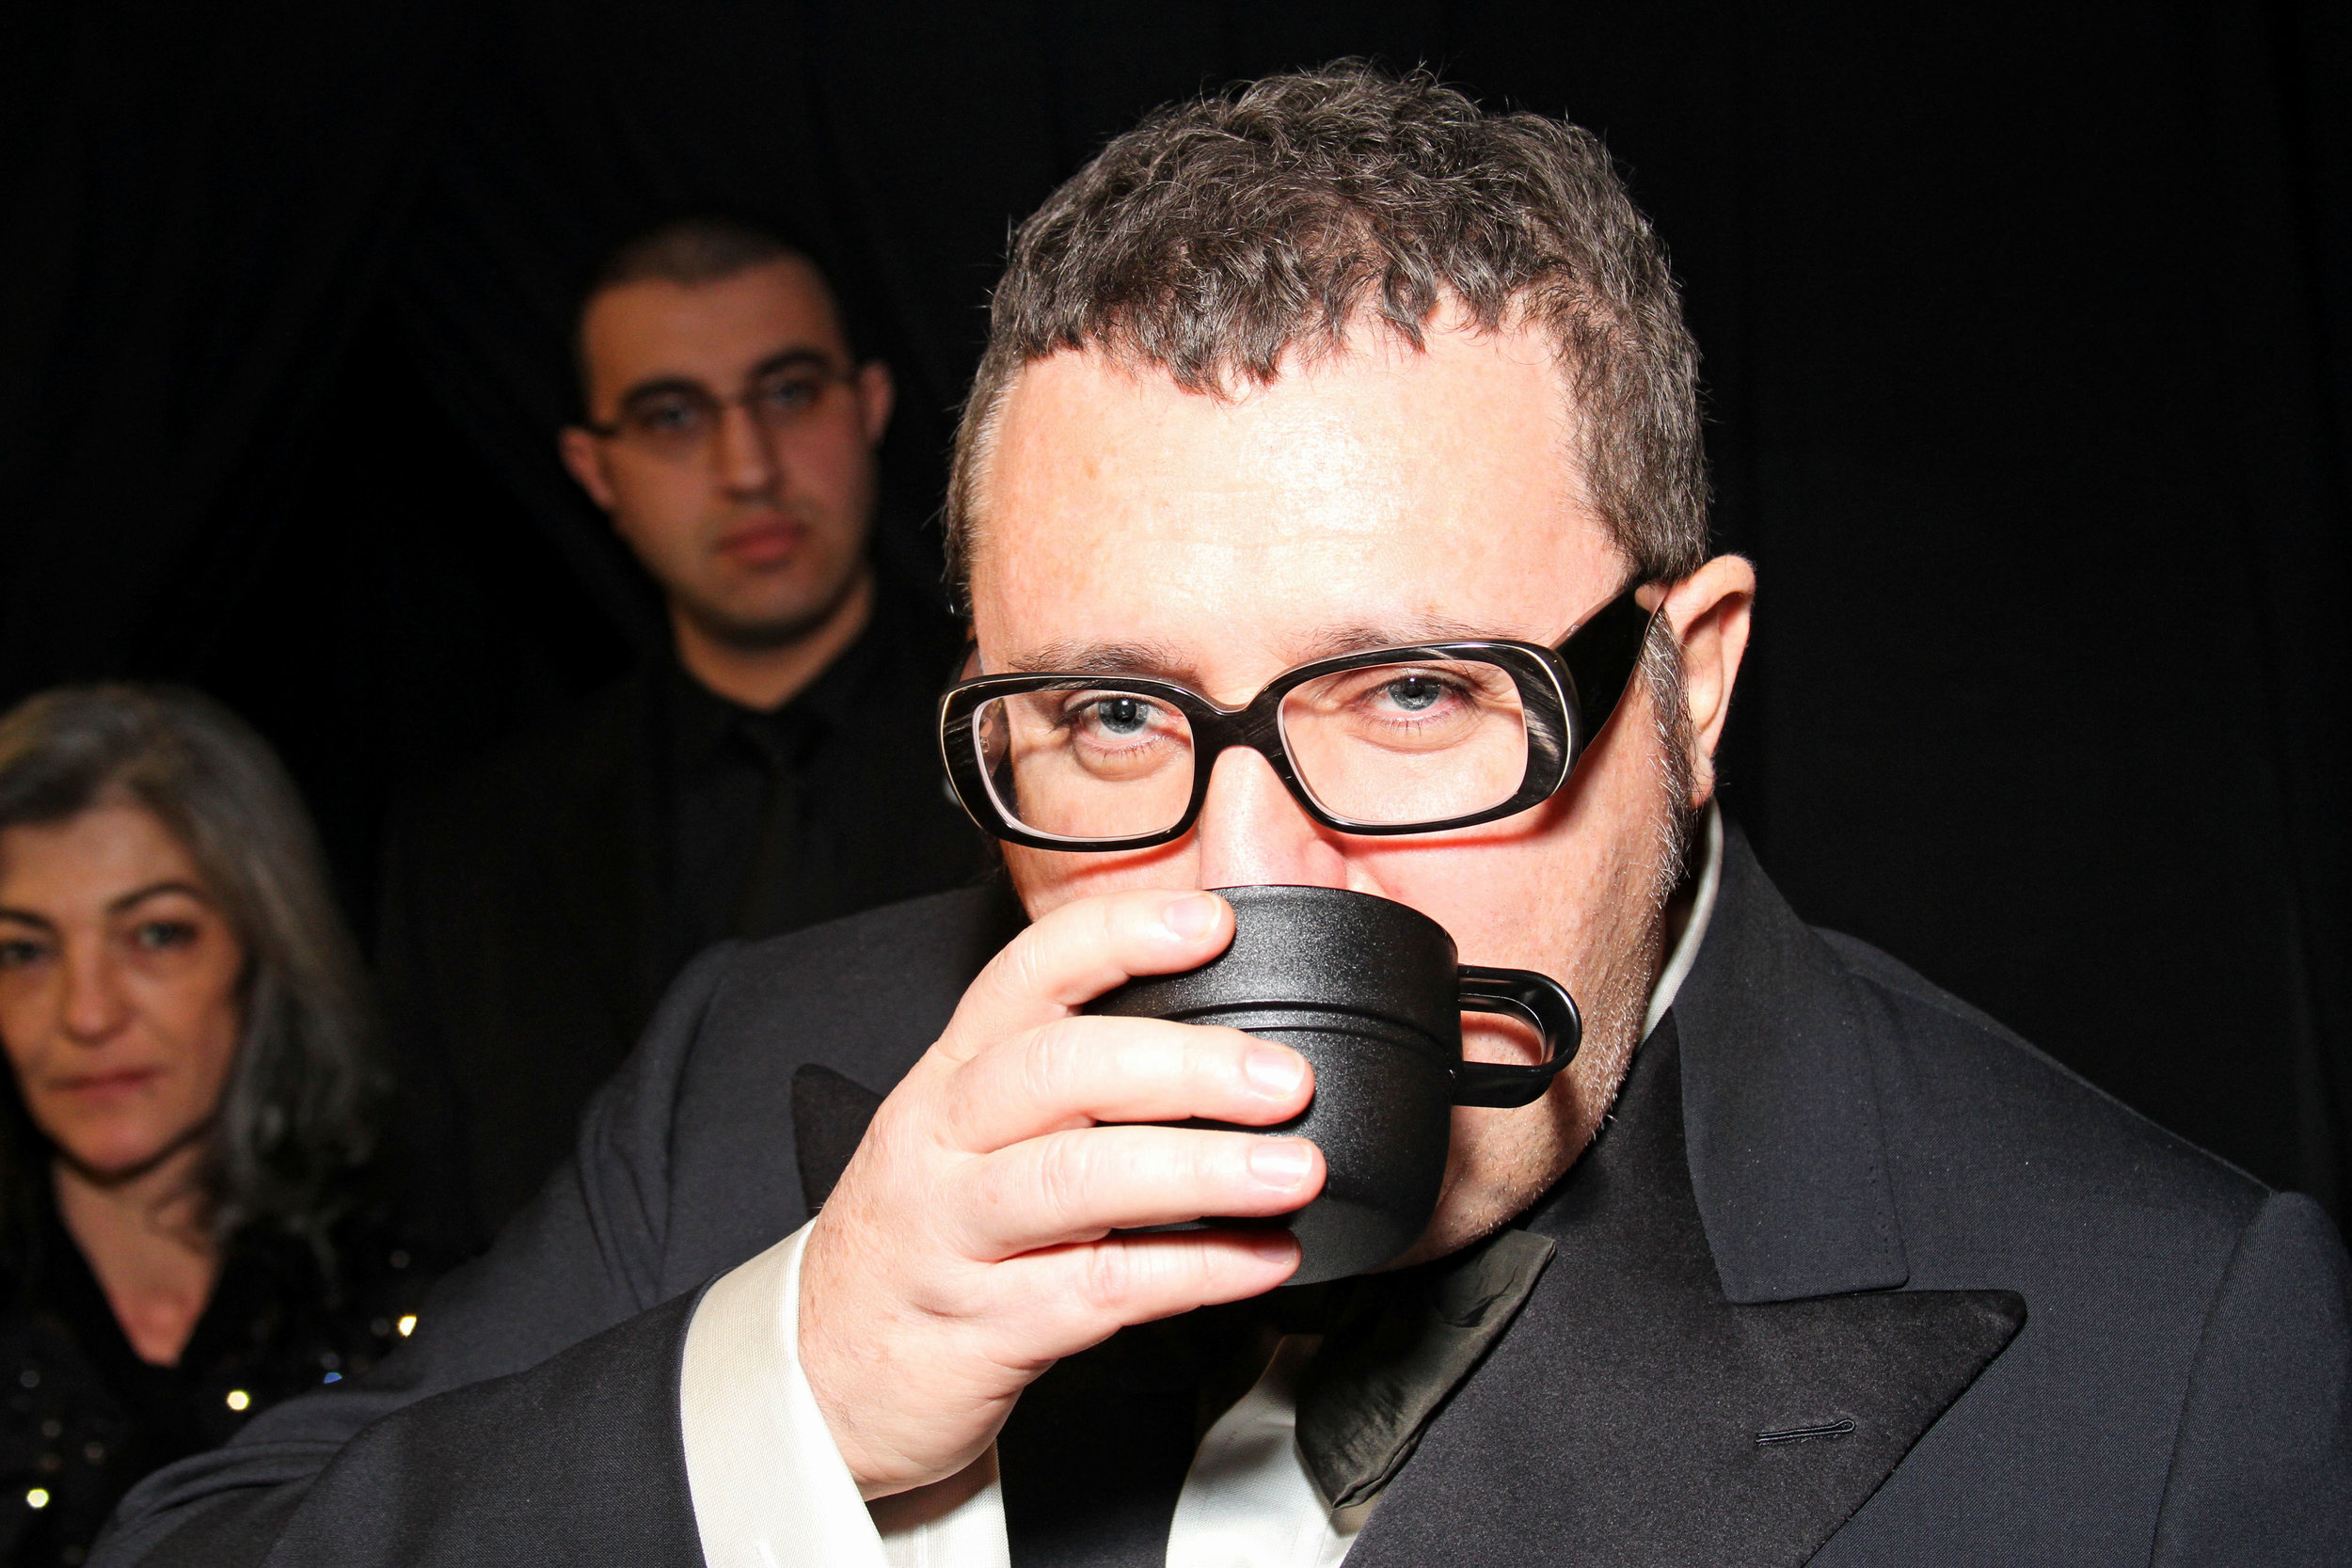 Alber Elbaz Backstage at Lanvin_img_0237.jpg